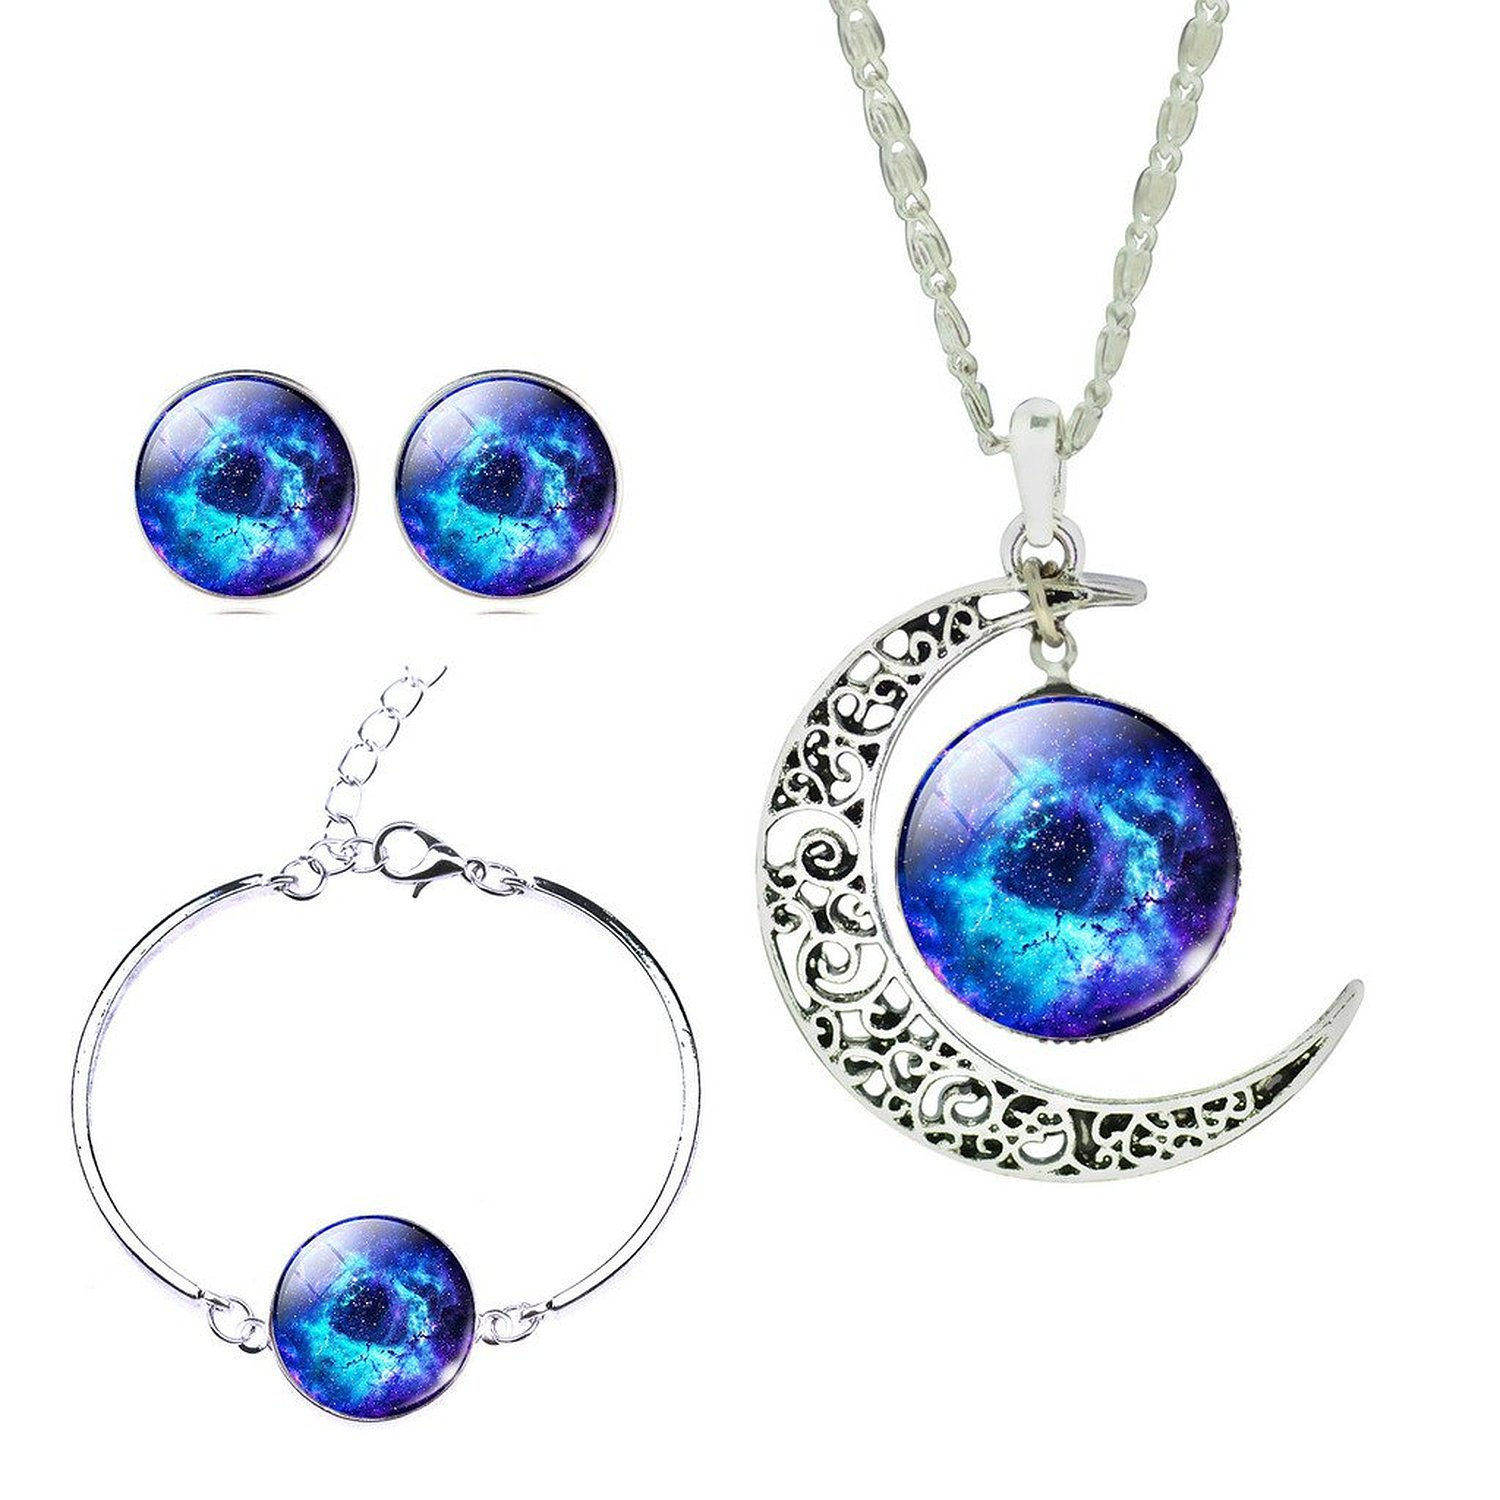 Men Fancy Galaxy Outer Space Hollow New Moon Crystal Cabochon Necklace Earrings Bracelet Jewelry Set